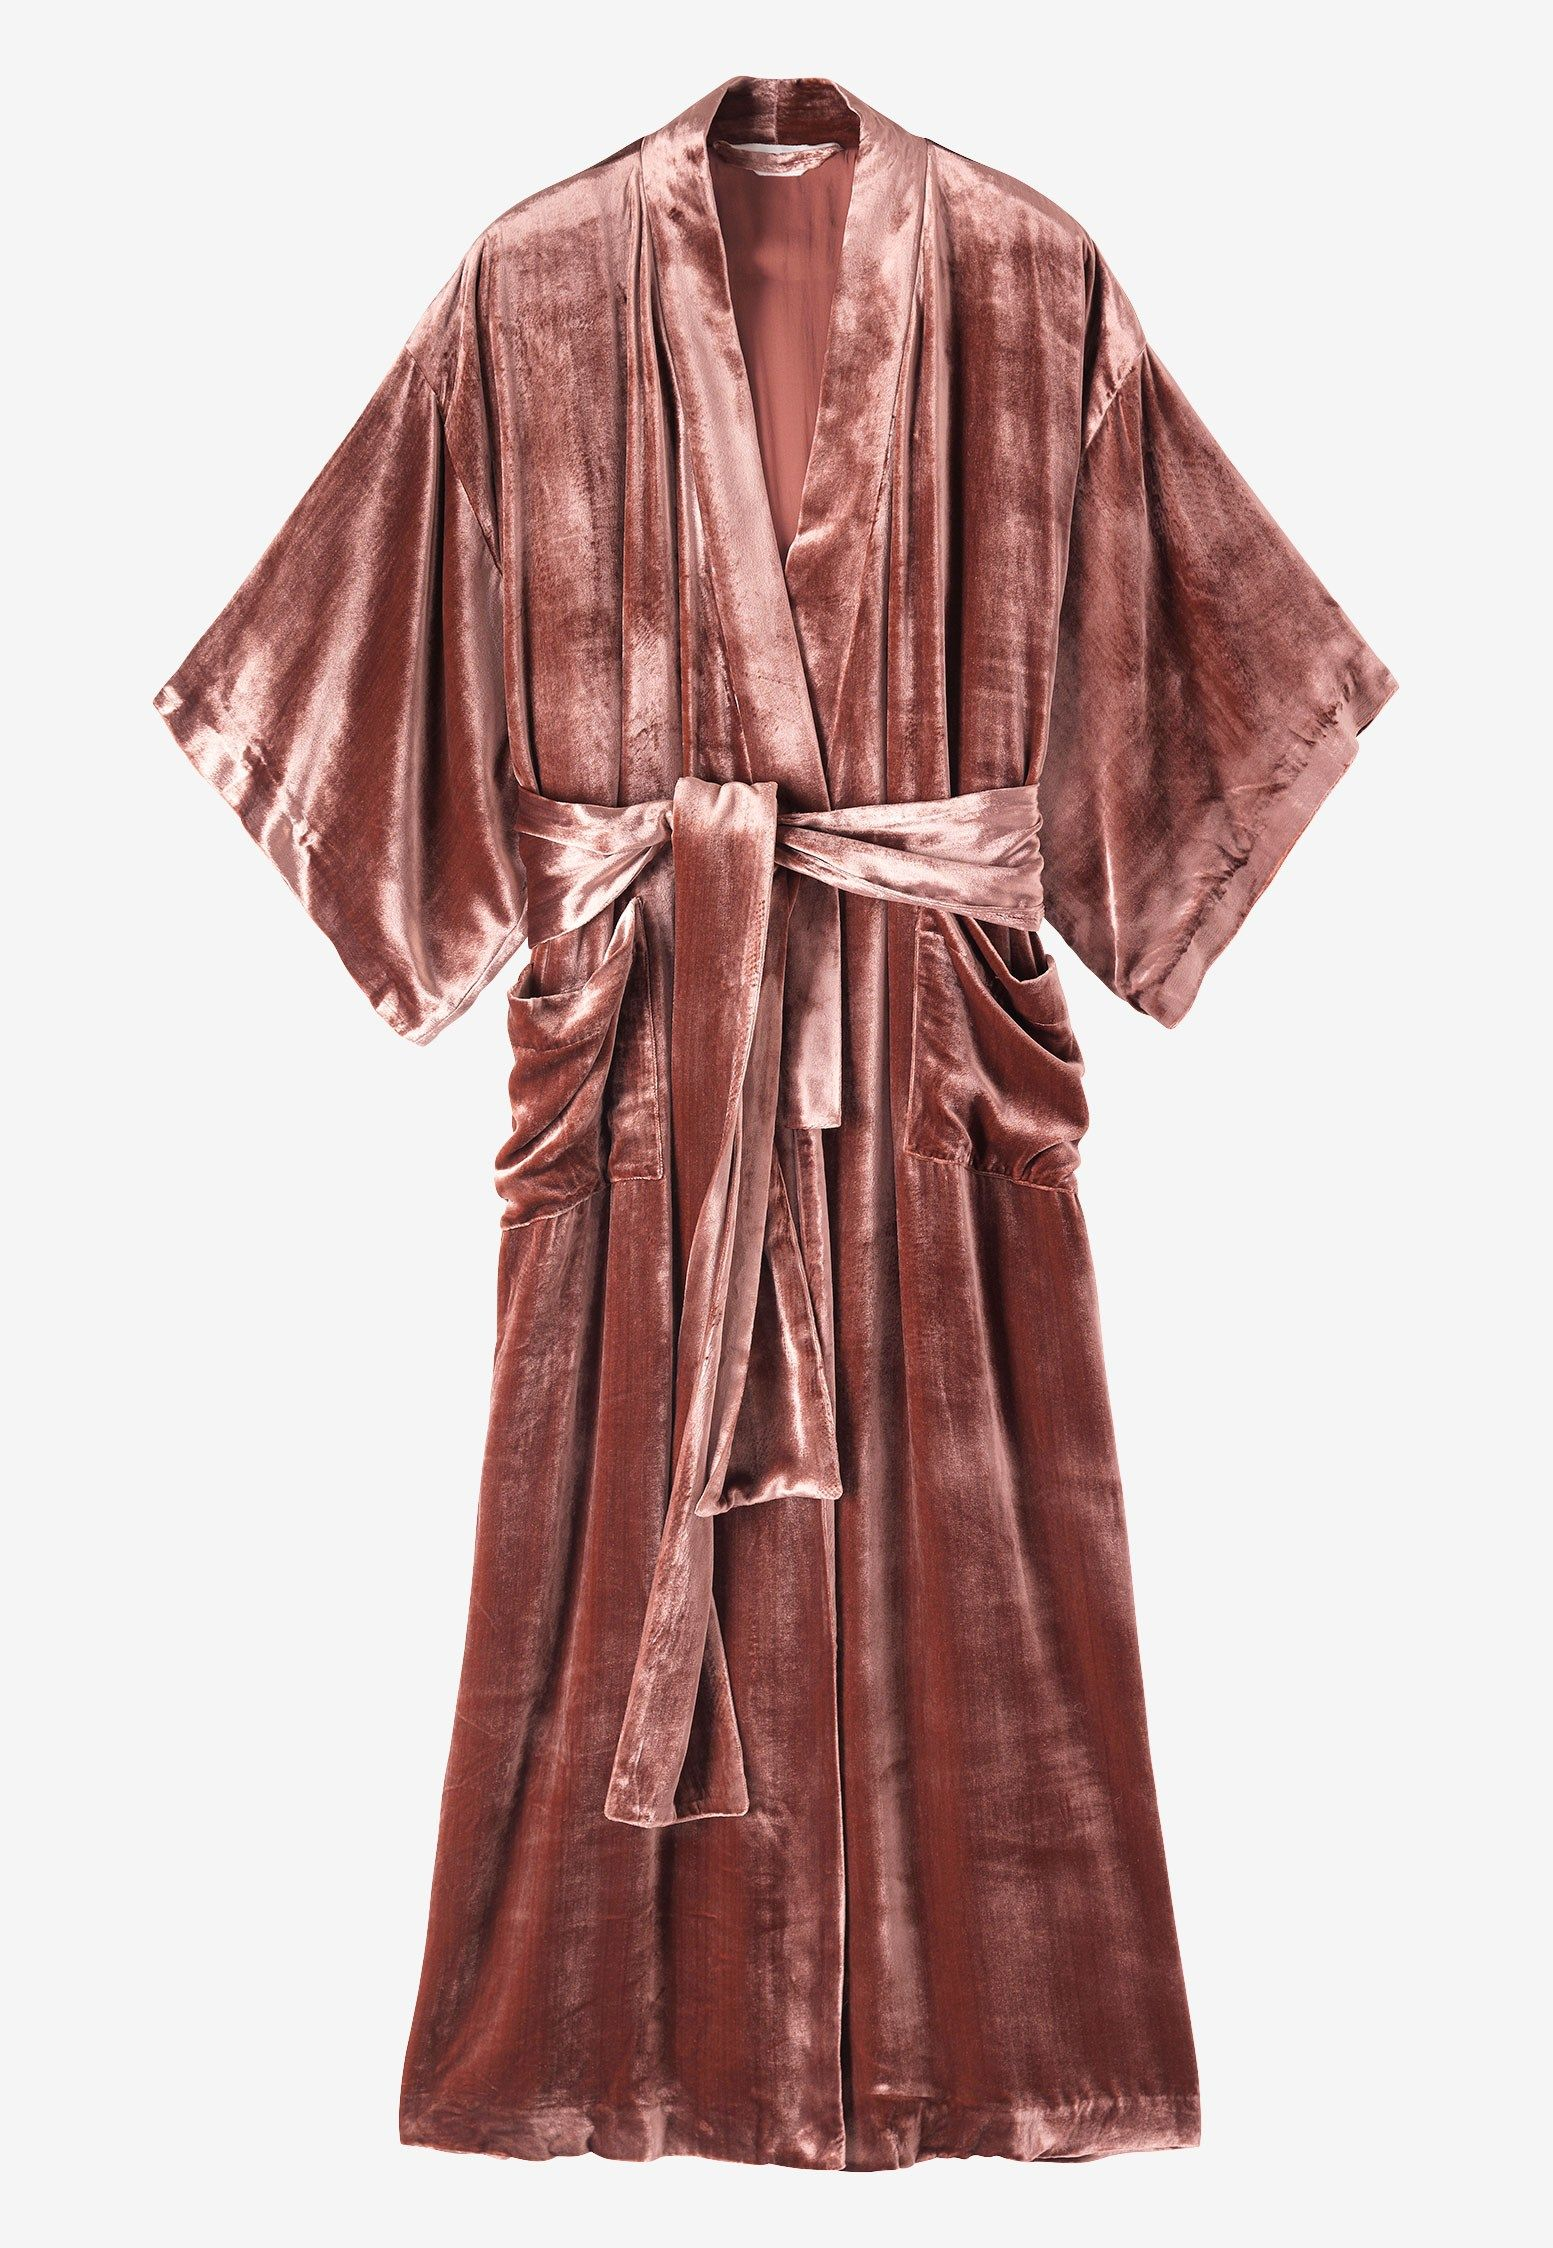 SILK VELVET KIMONO GOWN | Sumptuous long gown with traditional ...